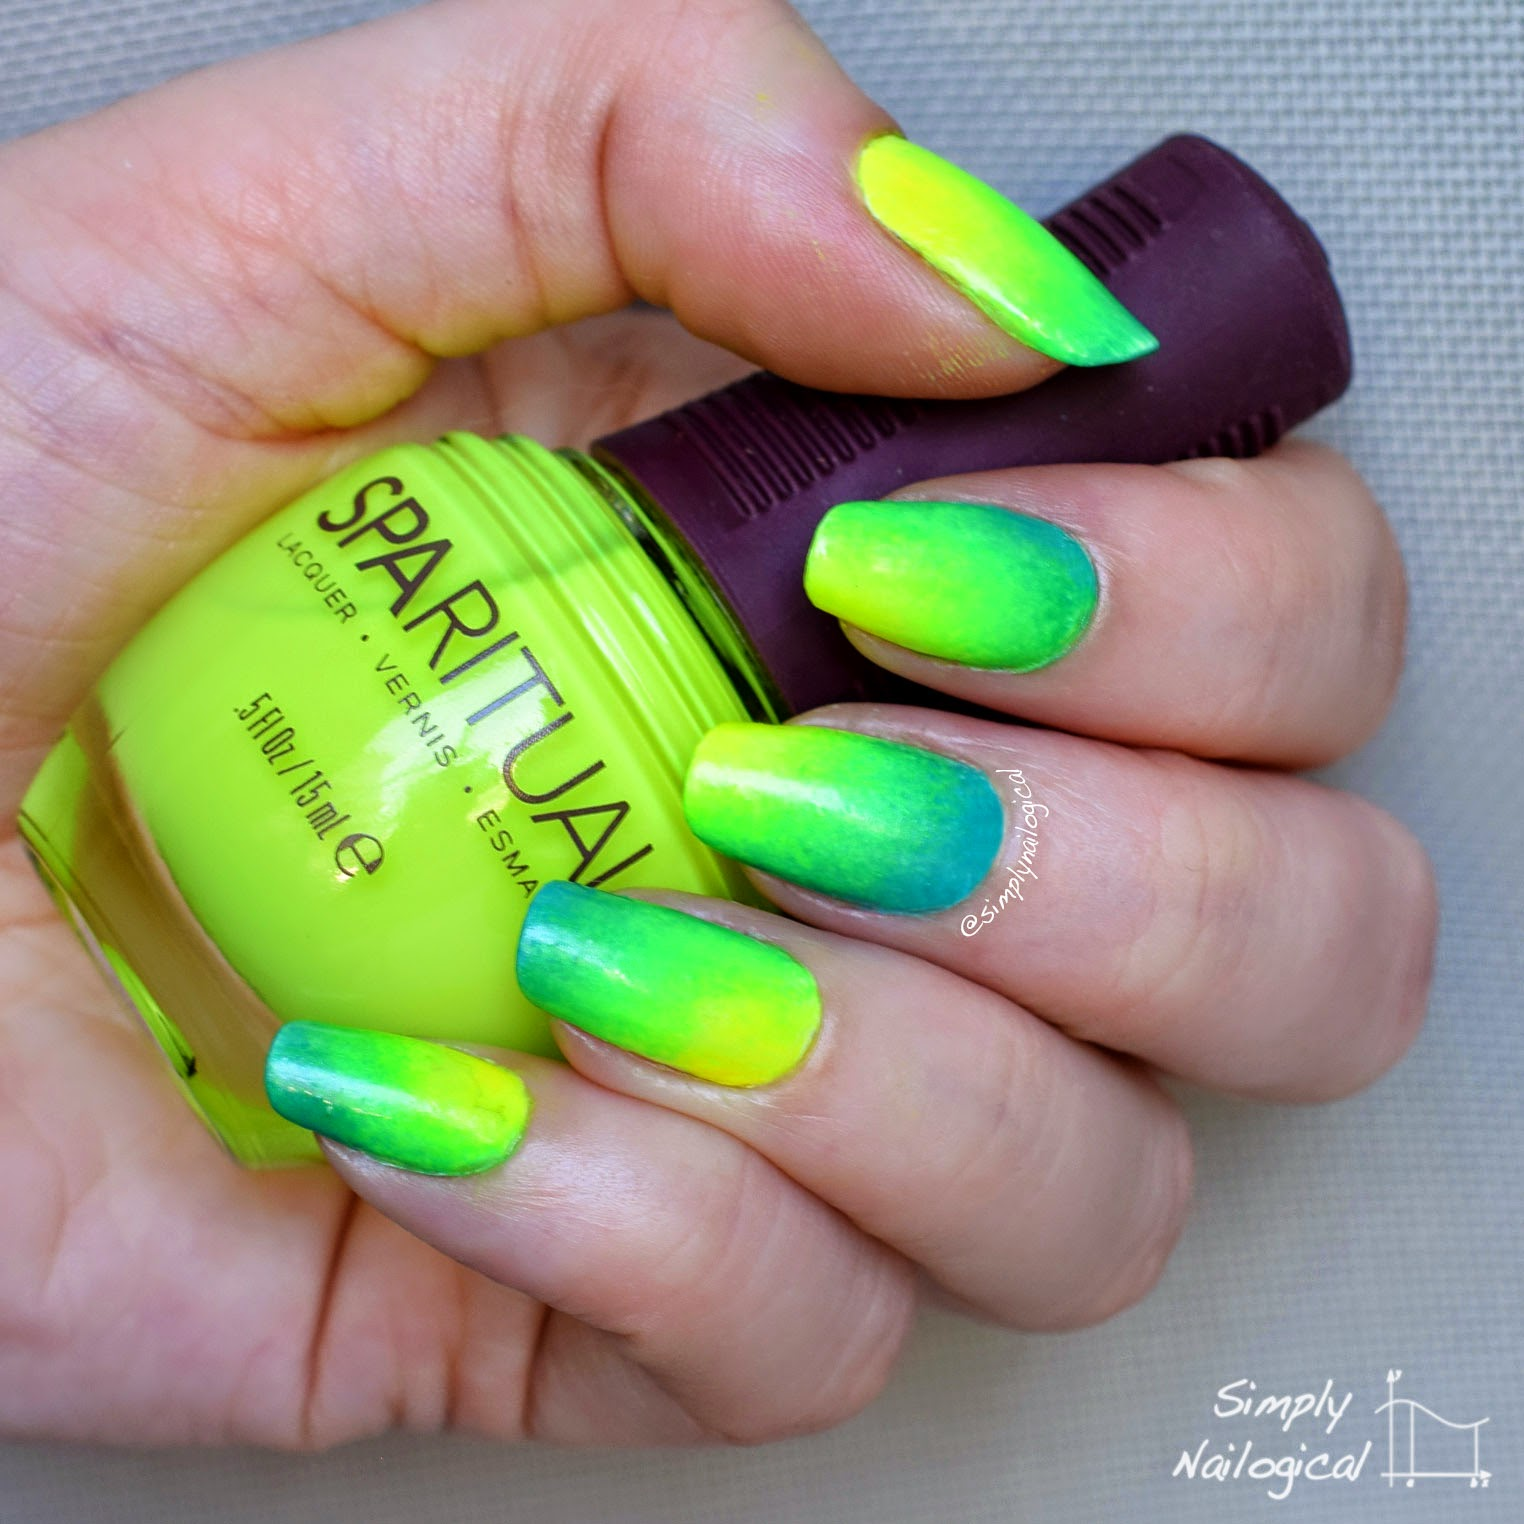 Just Paint The Polish On Make Up Sponge In A Ripple Effect Type Arrangement With Yellow Corner As Nucleus Then Green Outside That